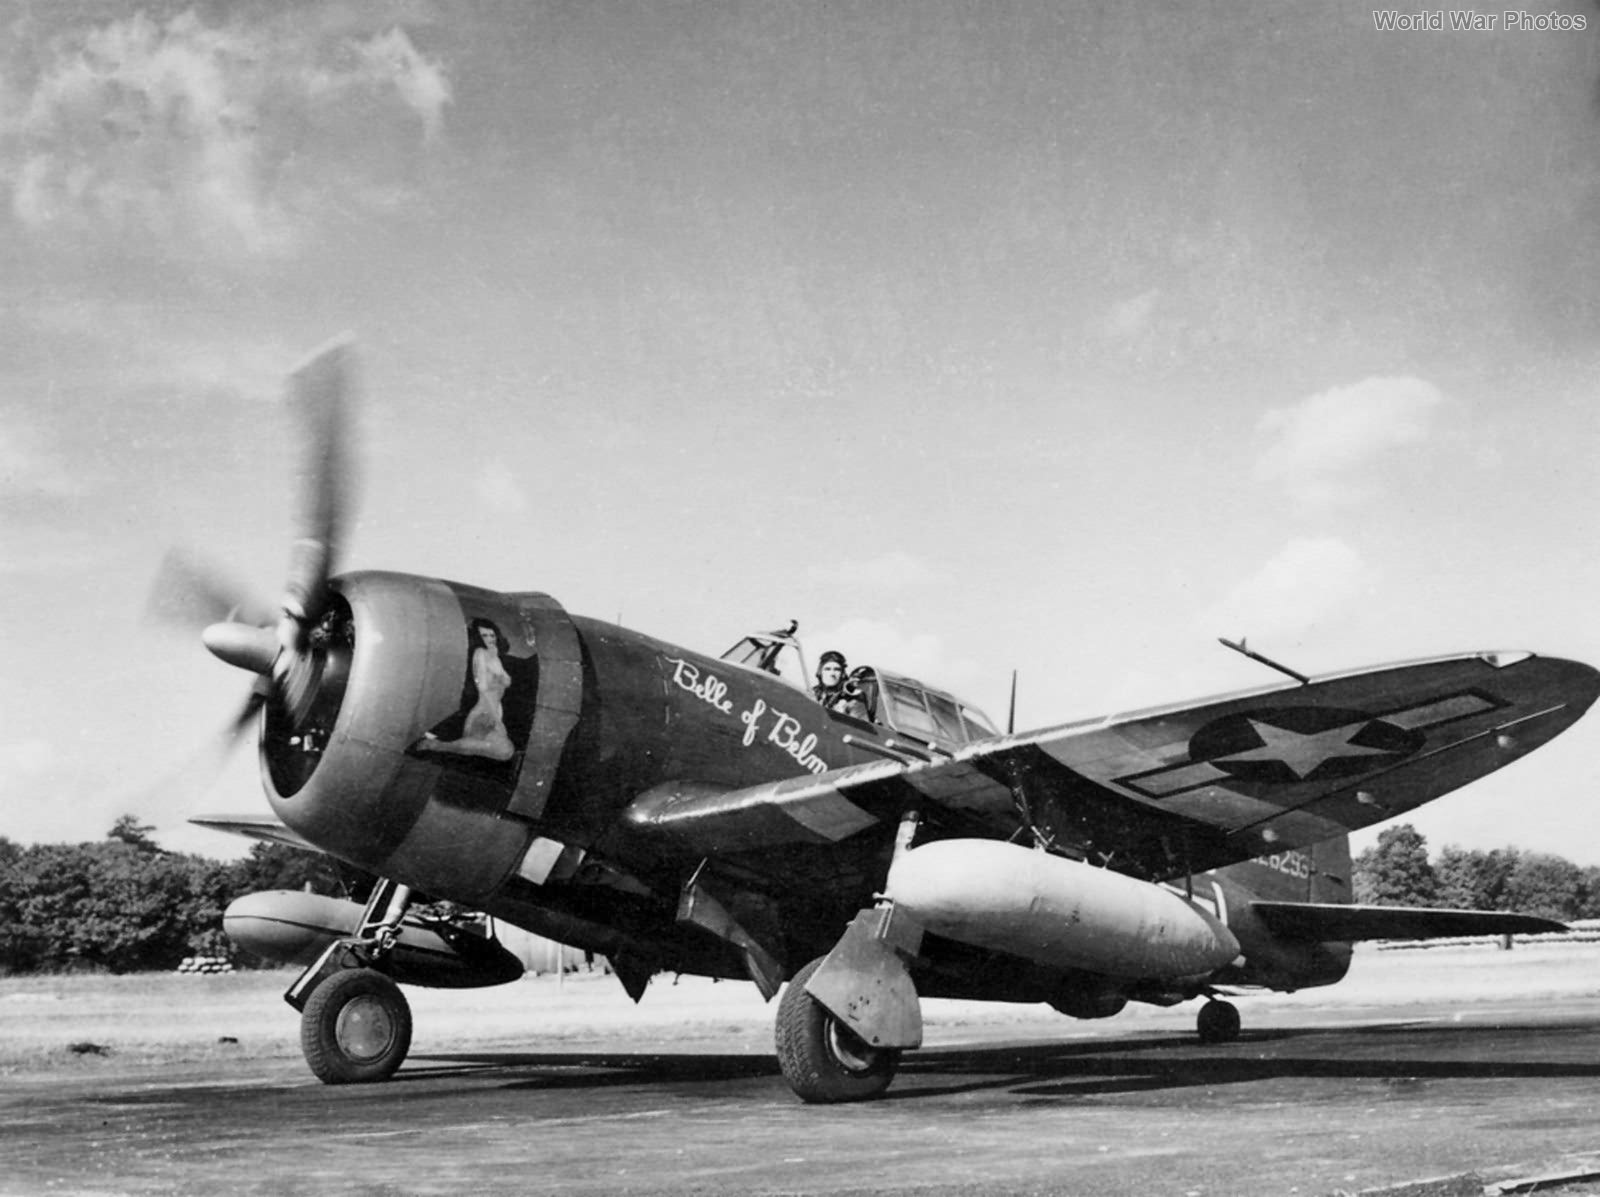 P-47D 42-26293 Belle 56th FG